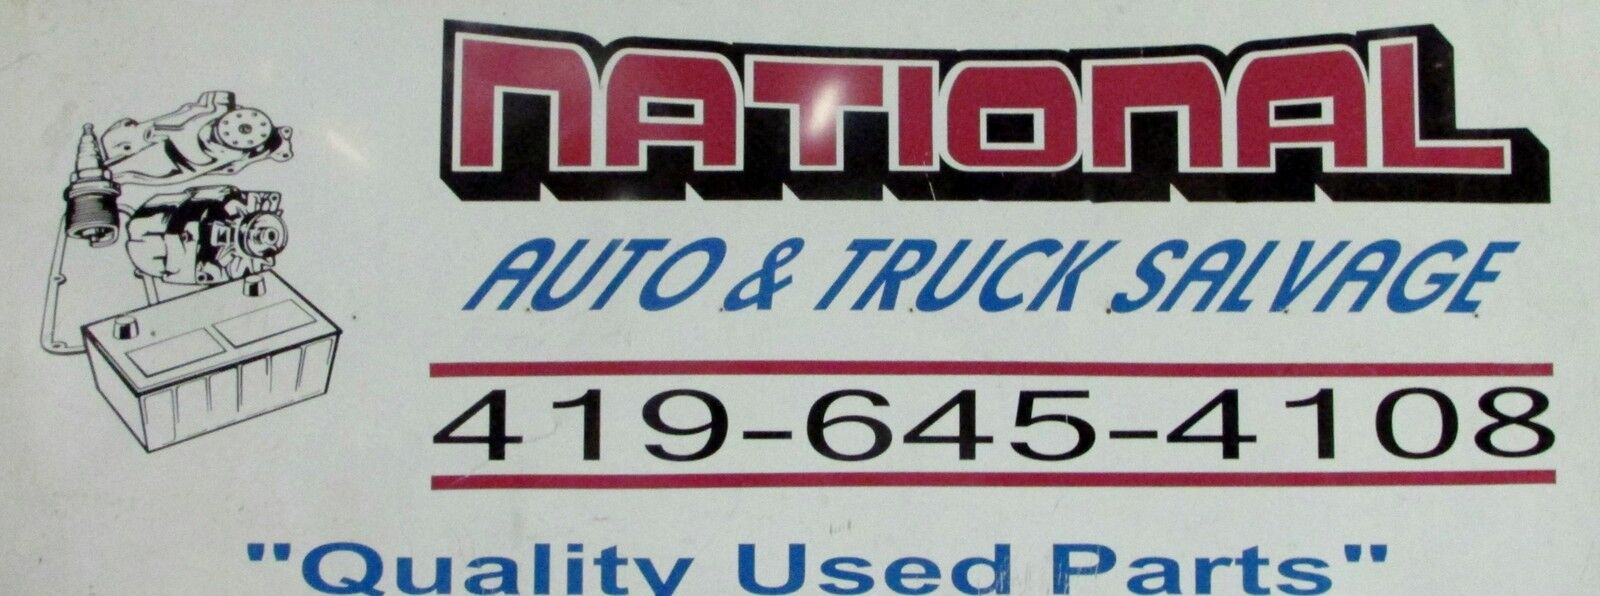 nationalautoandtruck